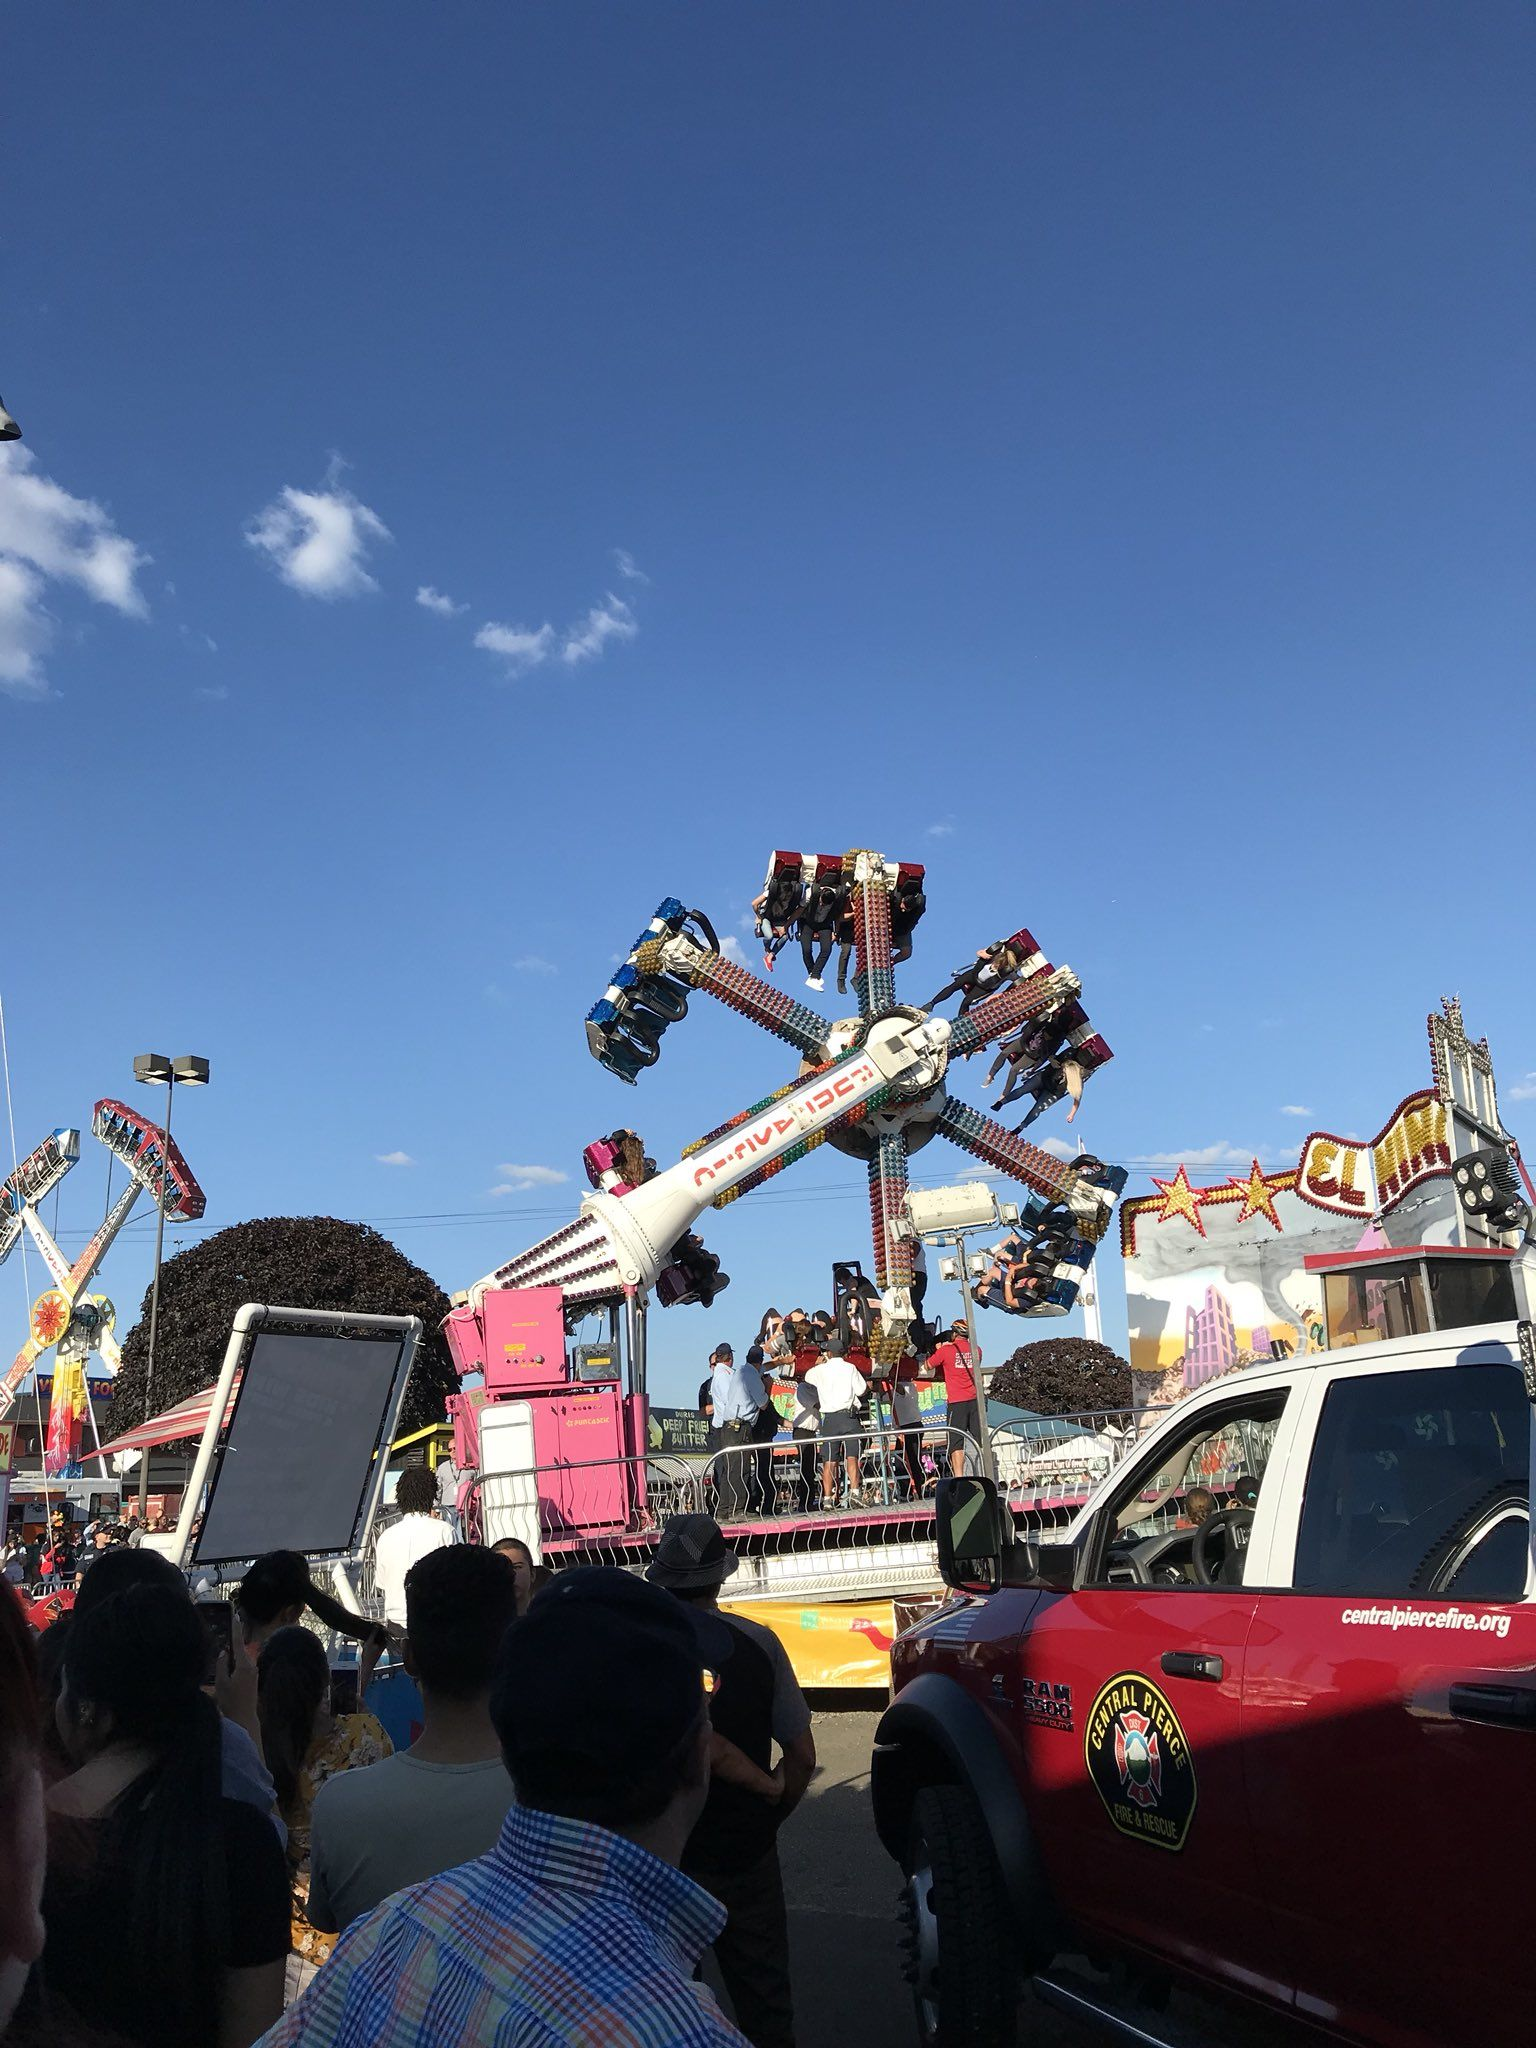 19 rescued after ride malfunctions at State Fair in ...